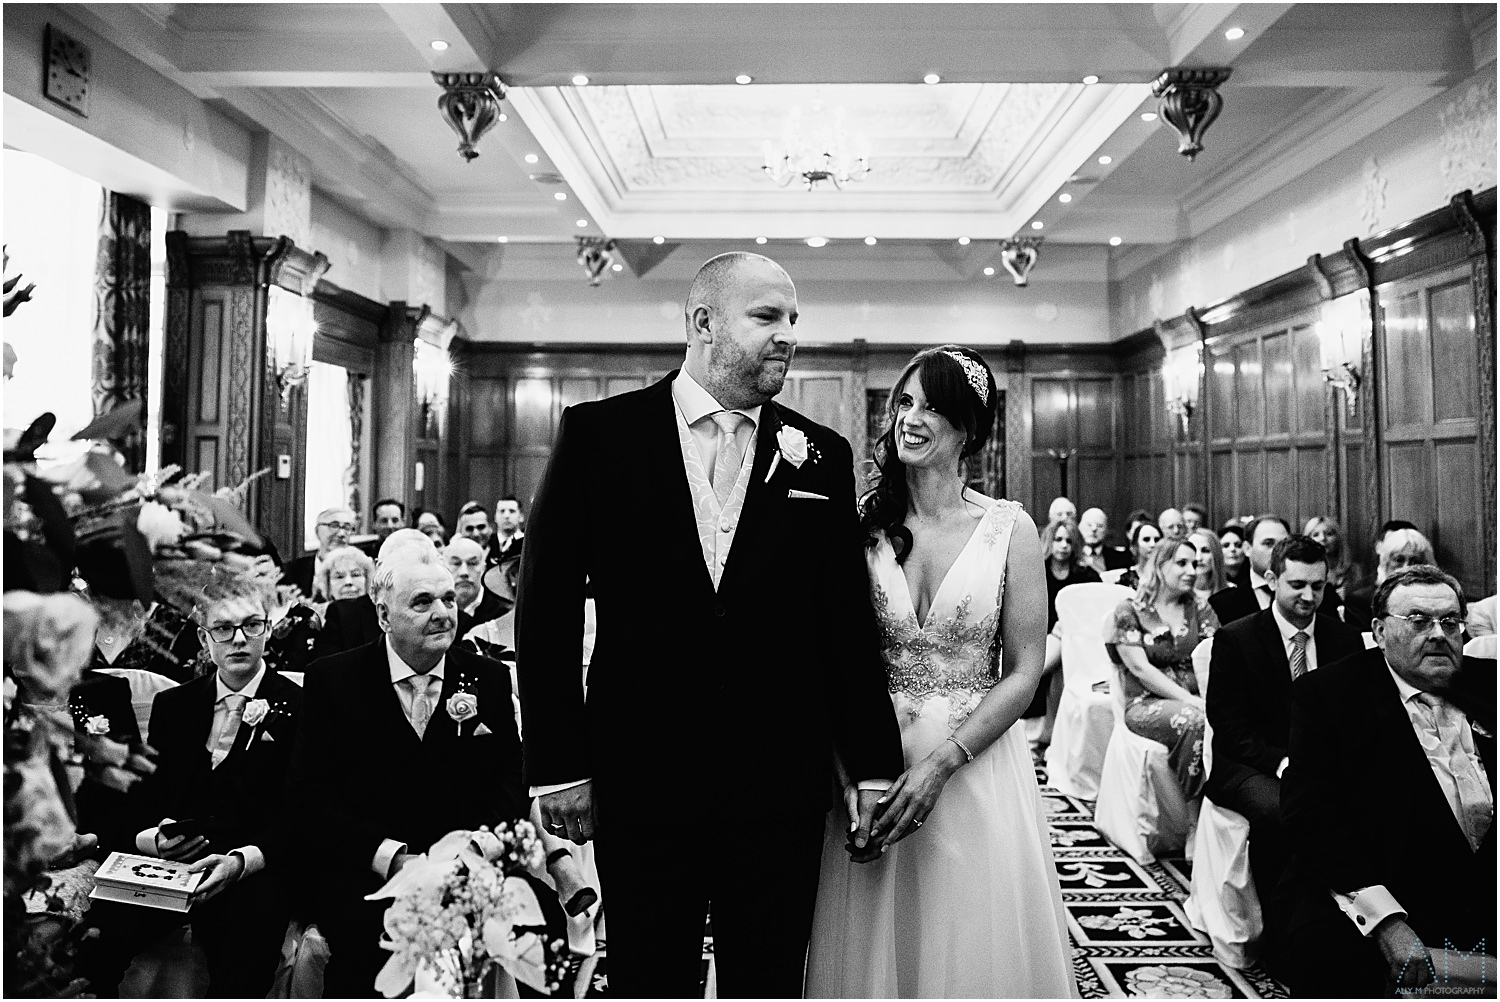 Bride and groom during ceremony at The Midland Hotel